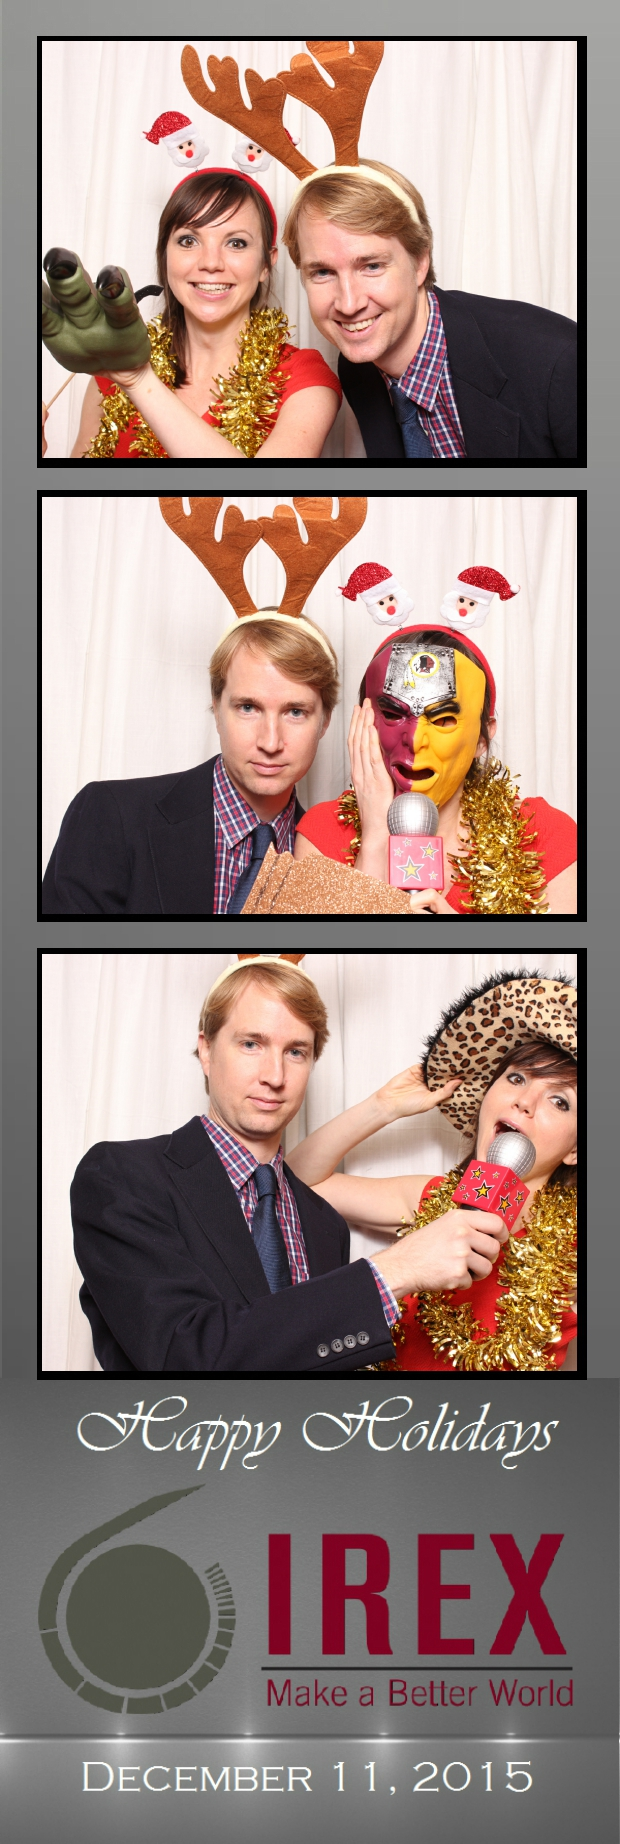 Guest House Events Photo Booth Strips IREX (21).jpg